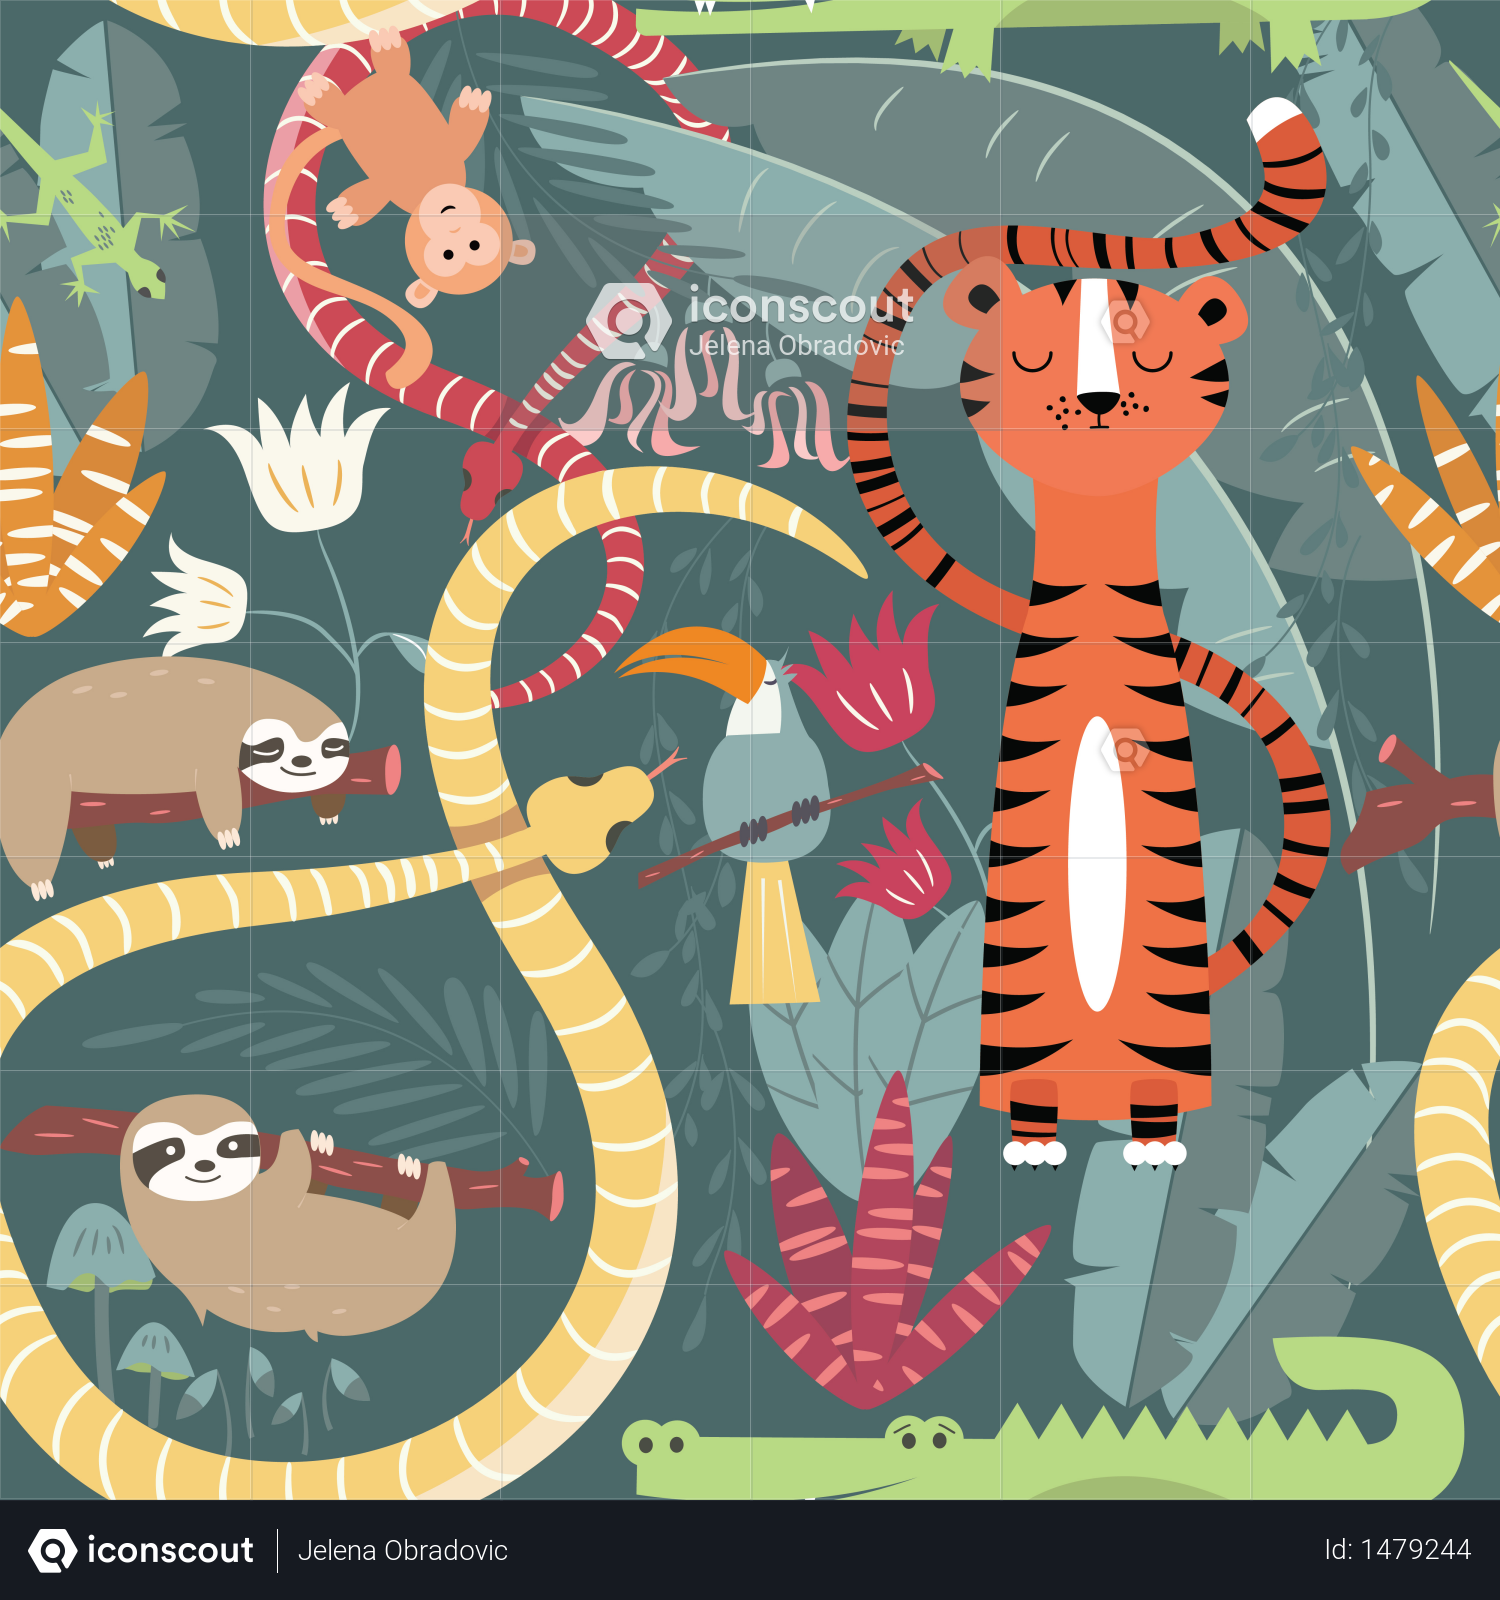 Premium Seamless pattern with cute rain forest animals, tiger, snake, sloth  Illustration download in PNG & Vector format | Rainforest animals, Forest  animals, Tiger illustration